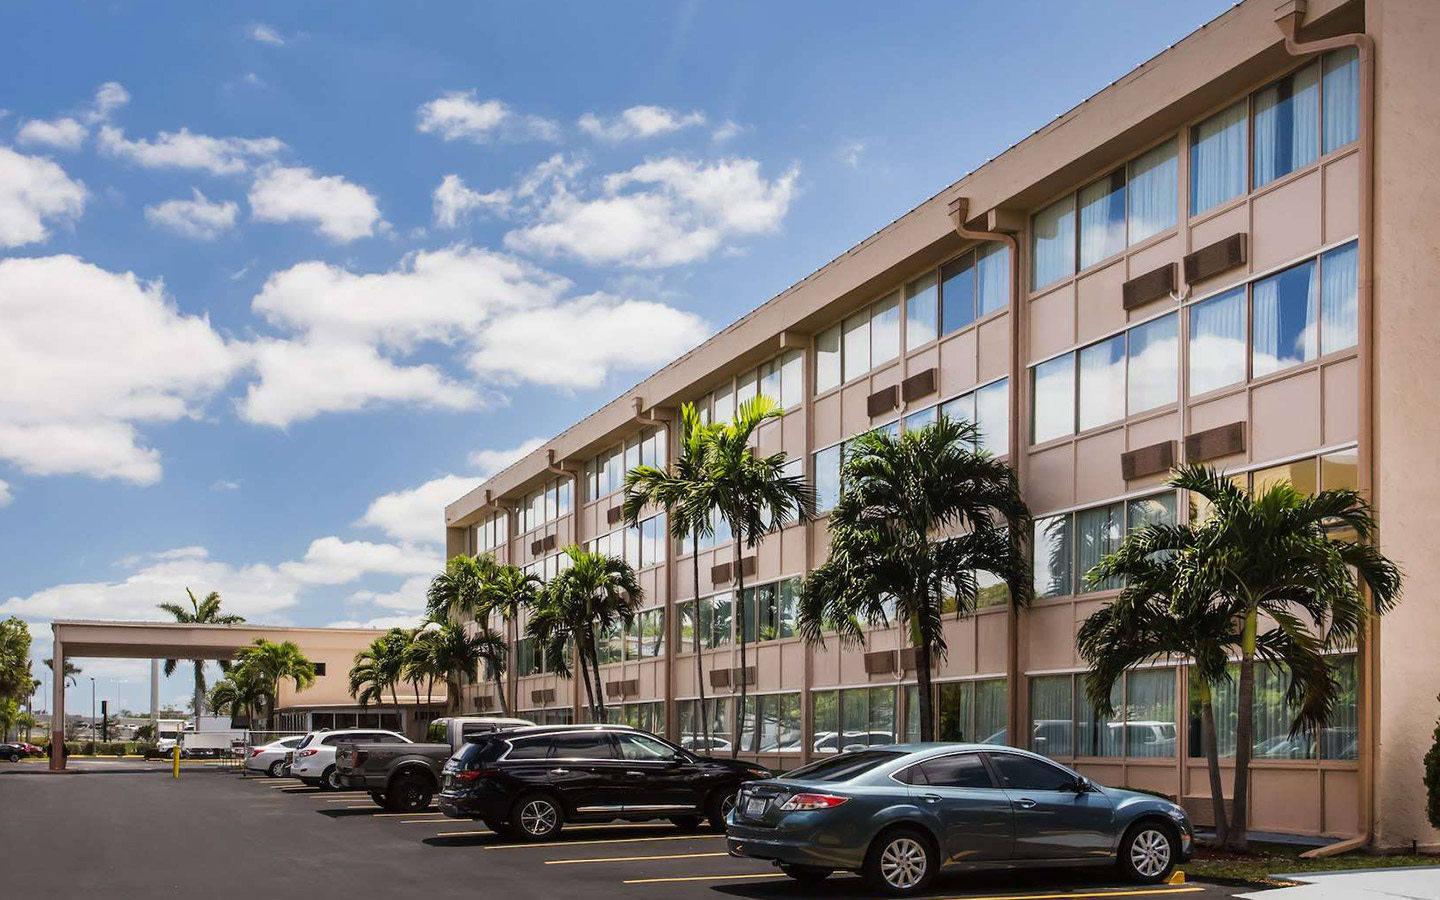 Days Inn - Miami International Airport Hotel